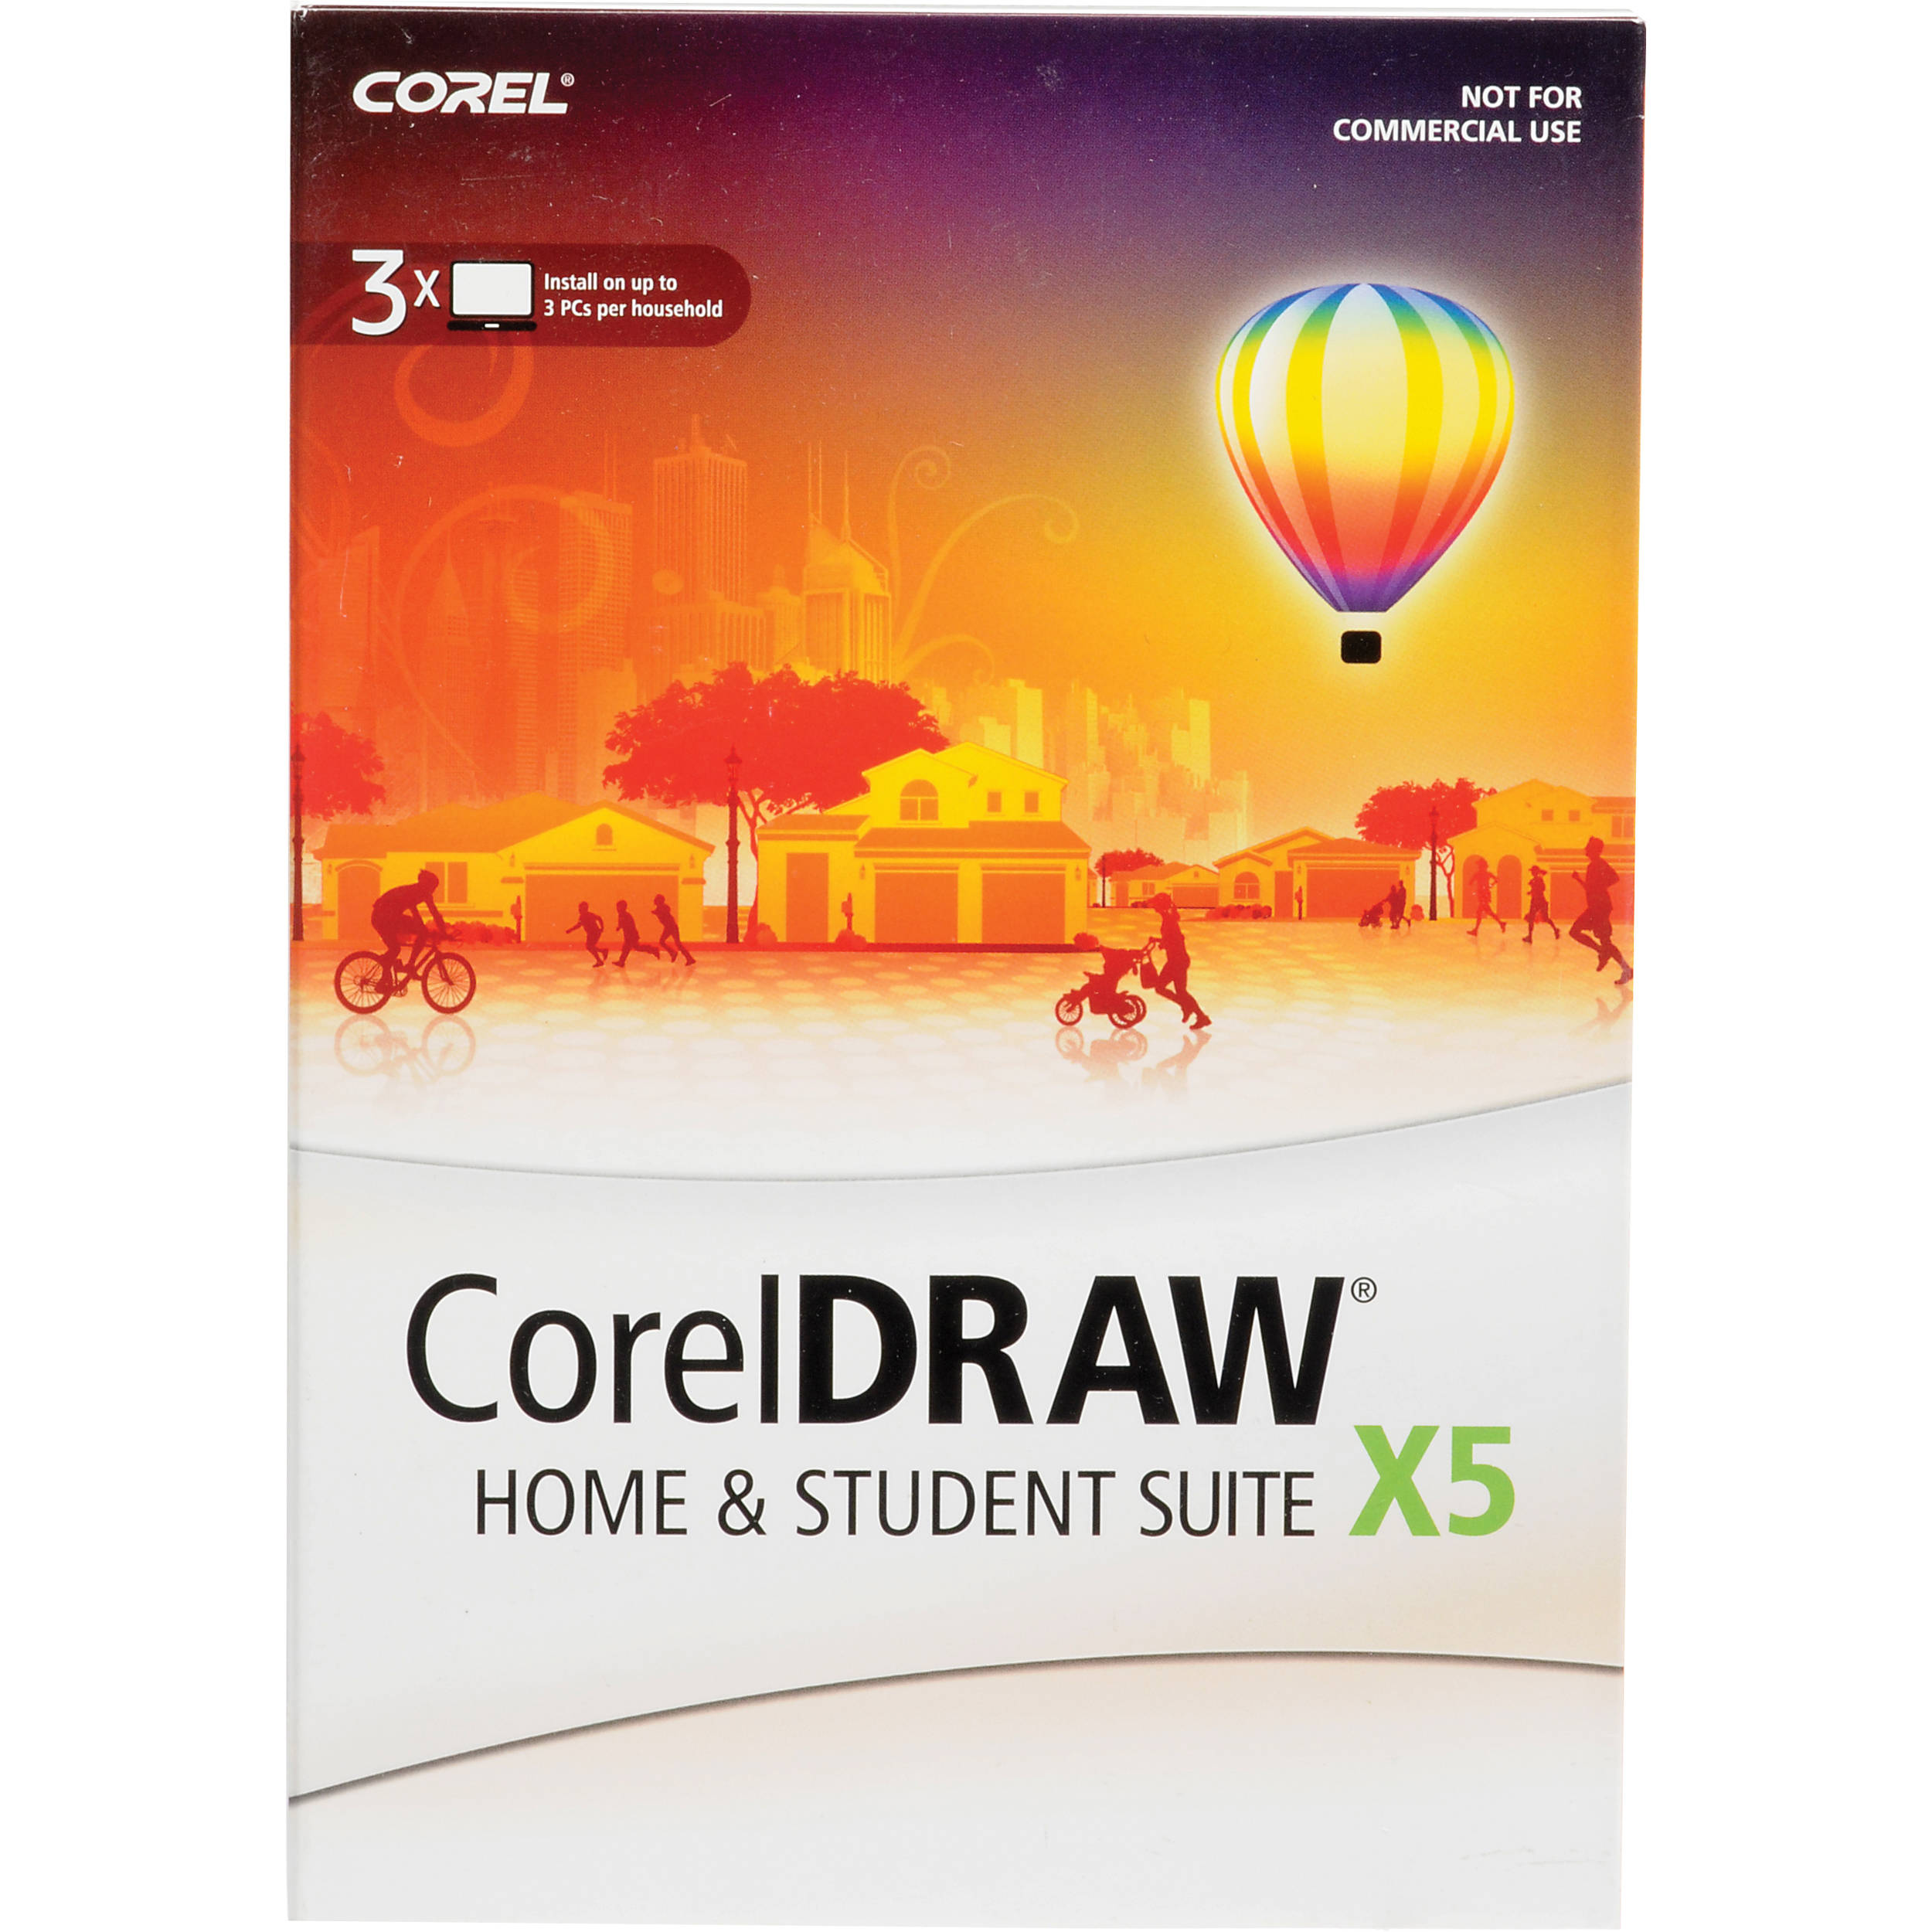 How to design t shirt in corel draw - Corel Coreldraw Home Student Suite X5 Software